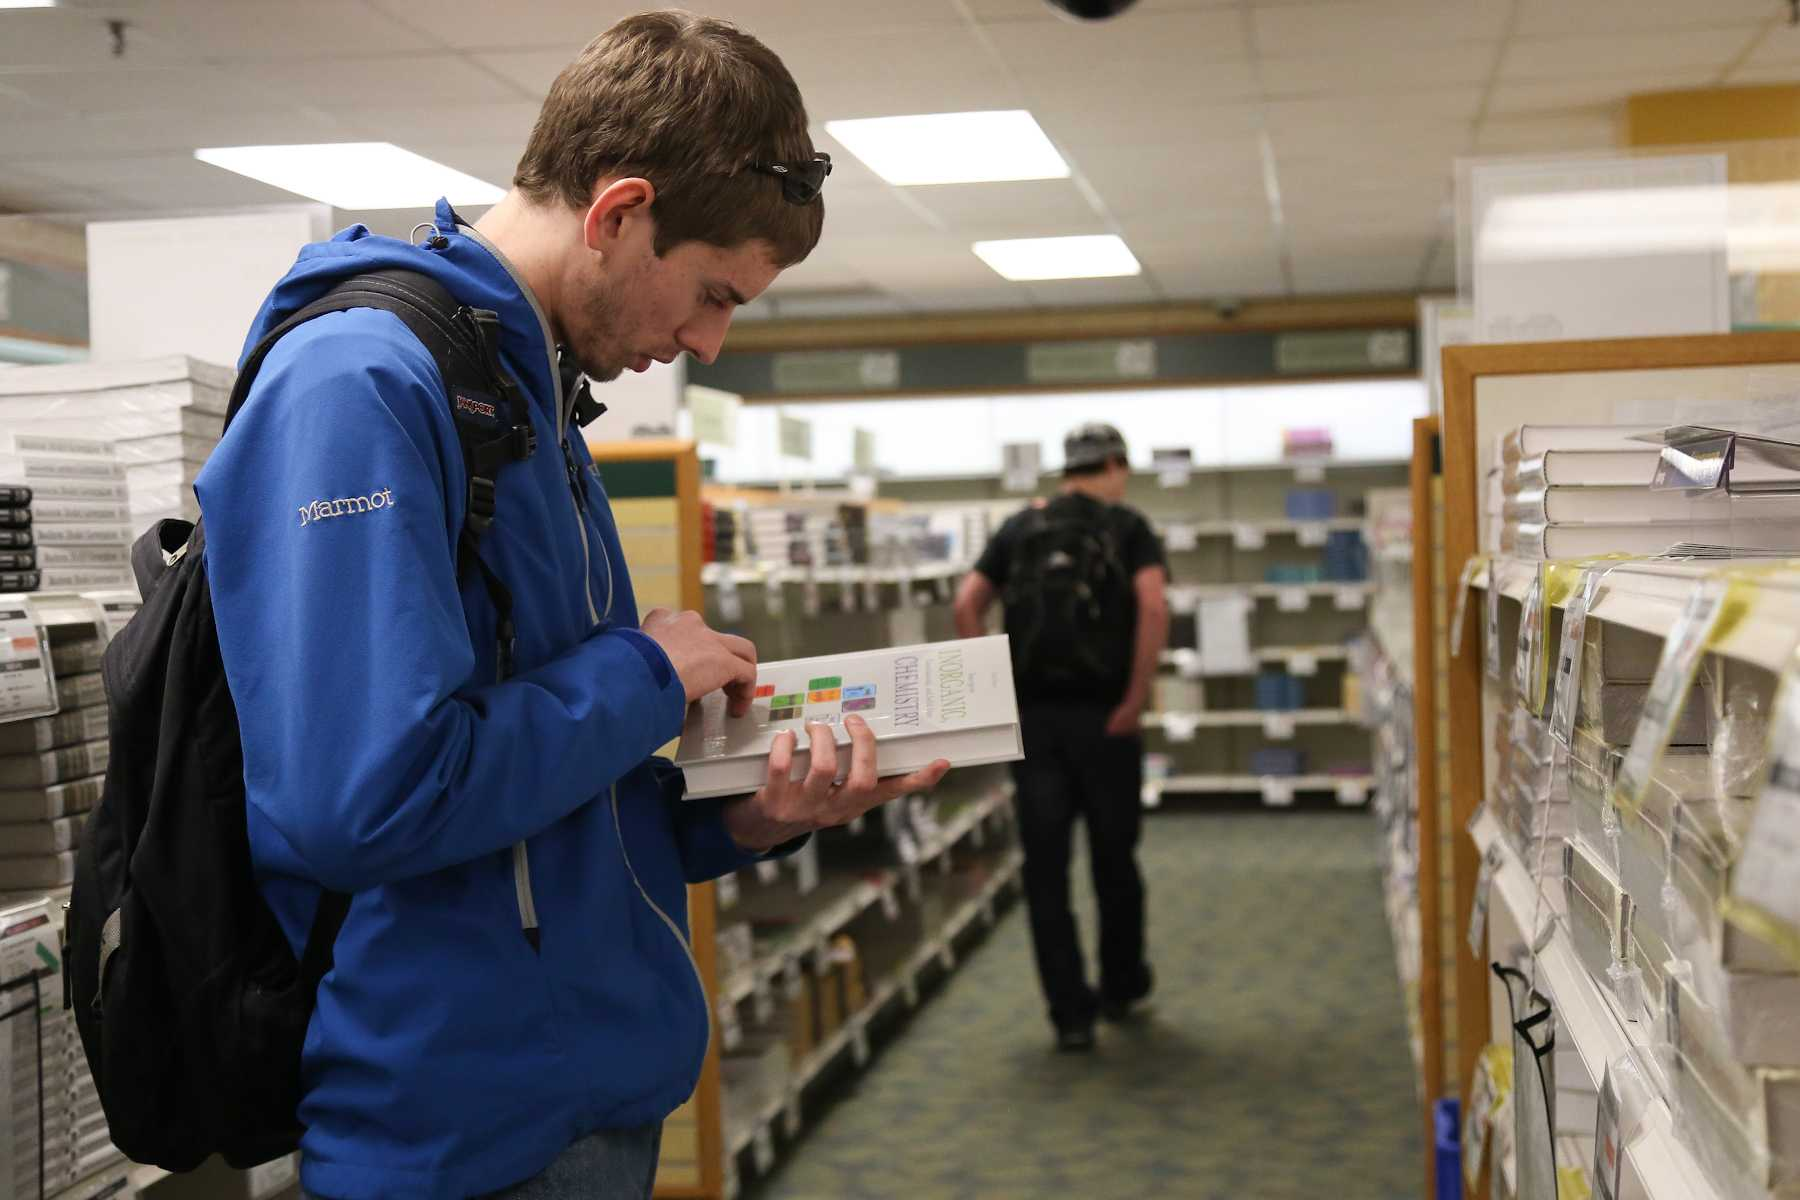 Junior Biology major Miles Eckley shops for books at the Lory Student Center bookstore Monday. With the rising cost of tuition and being a student in general, the university is working on a bill that will establish a tax holiday for all Colorado State university bookstores.